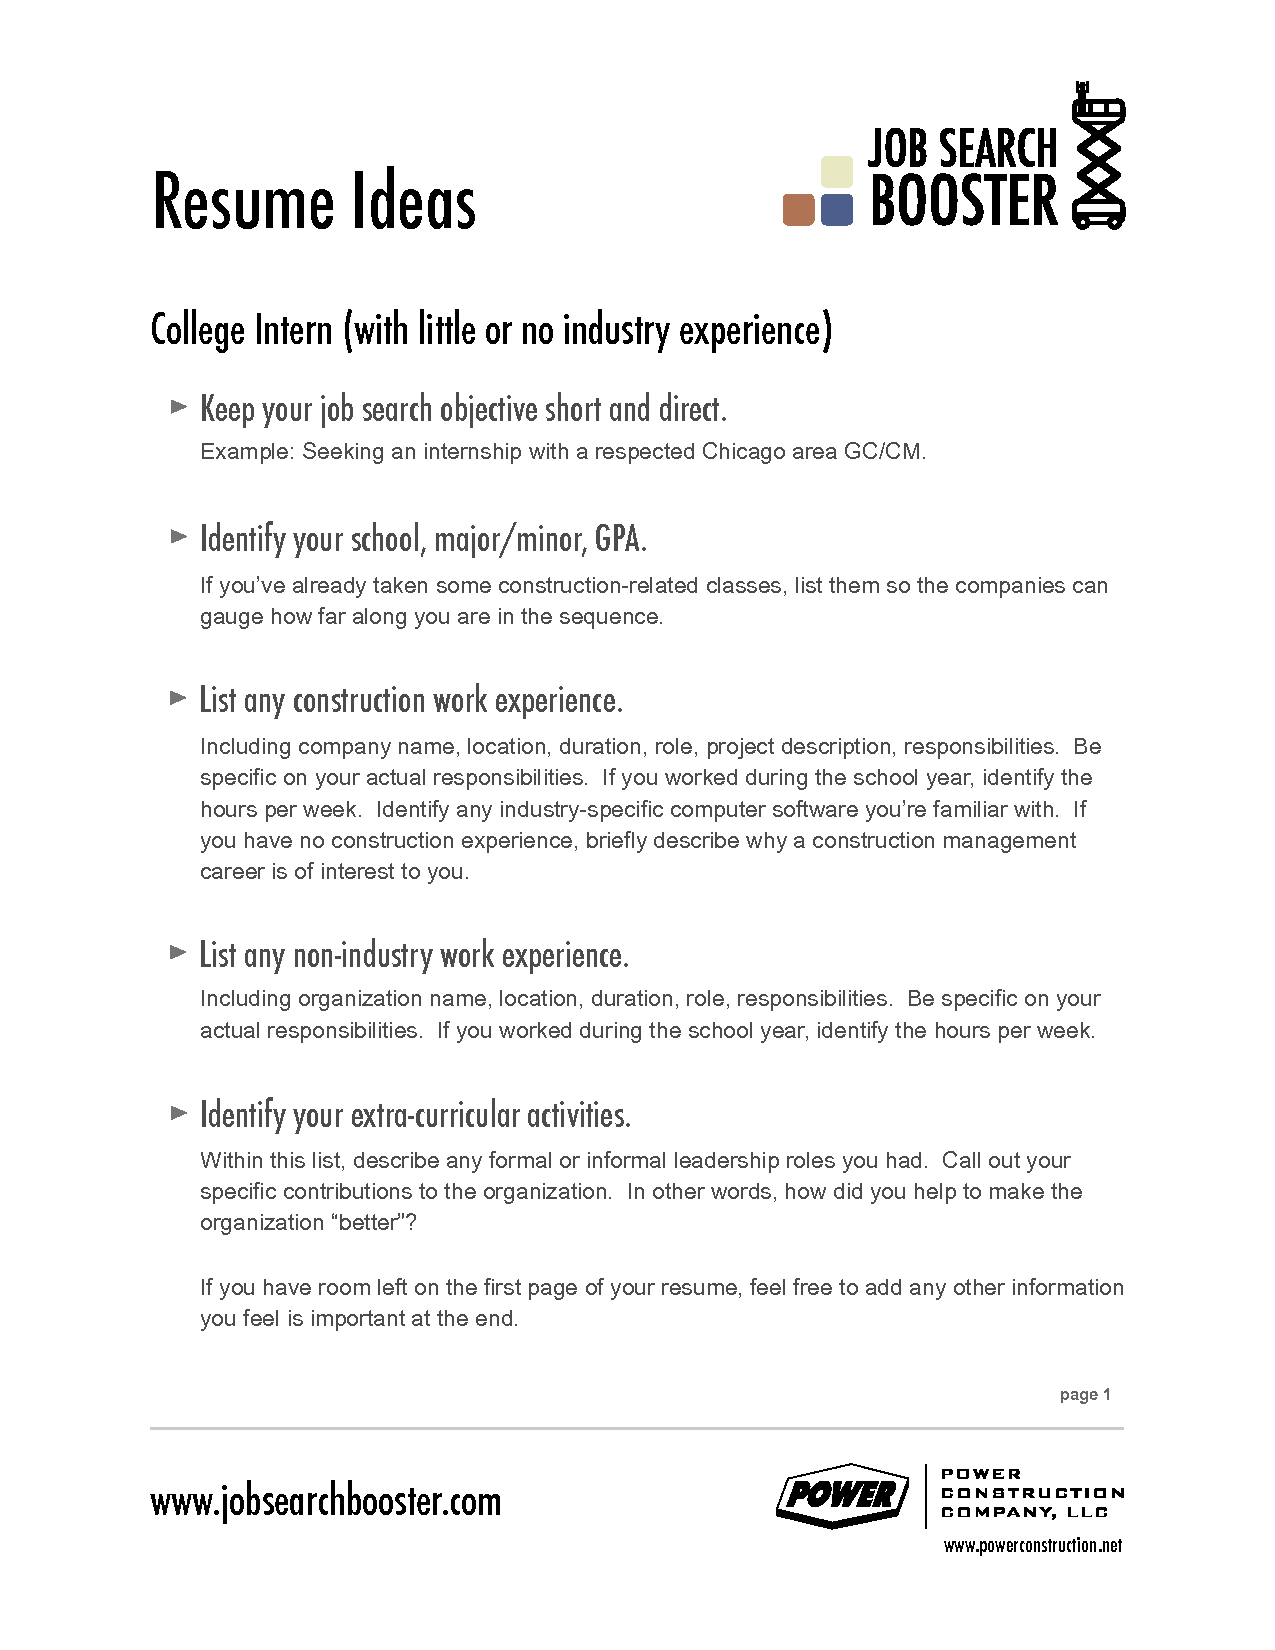 What Is A Good Objective To Write On A Resume Resume Objective Examples Job Resume Objective Examples